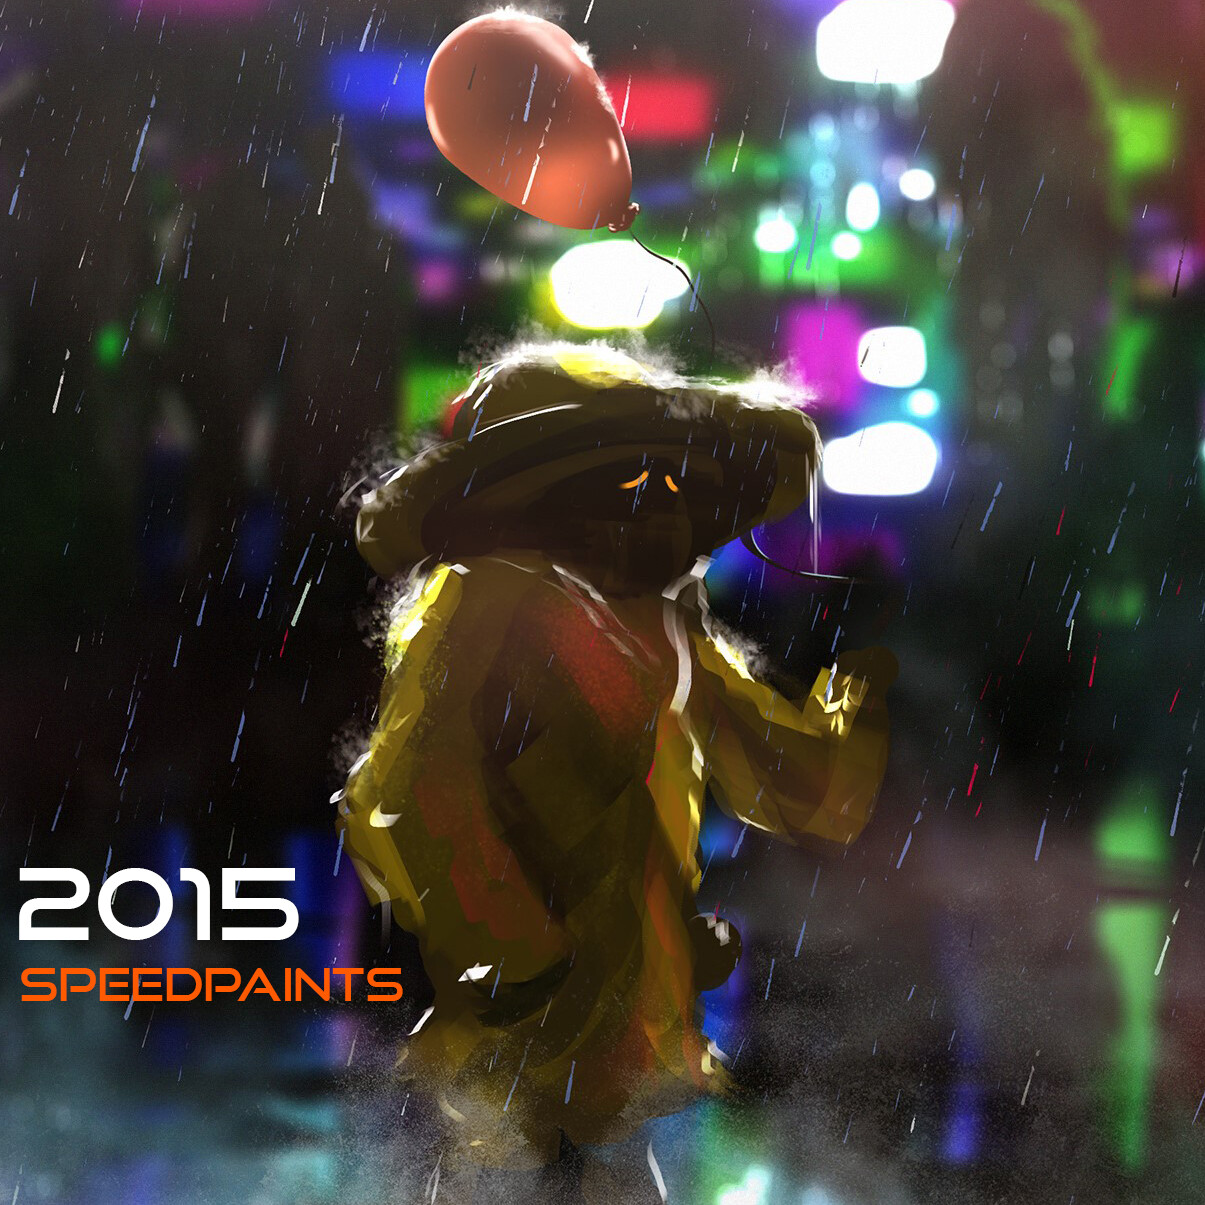 2015 - Speedpaints